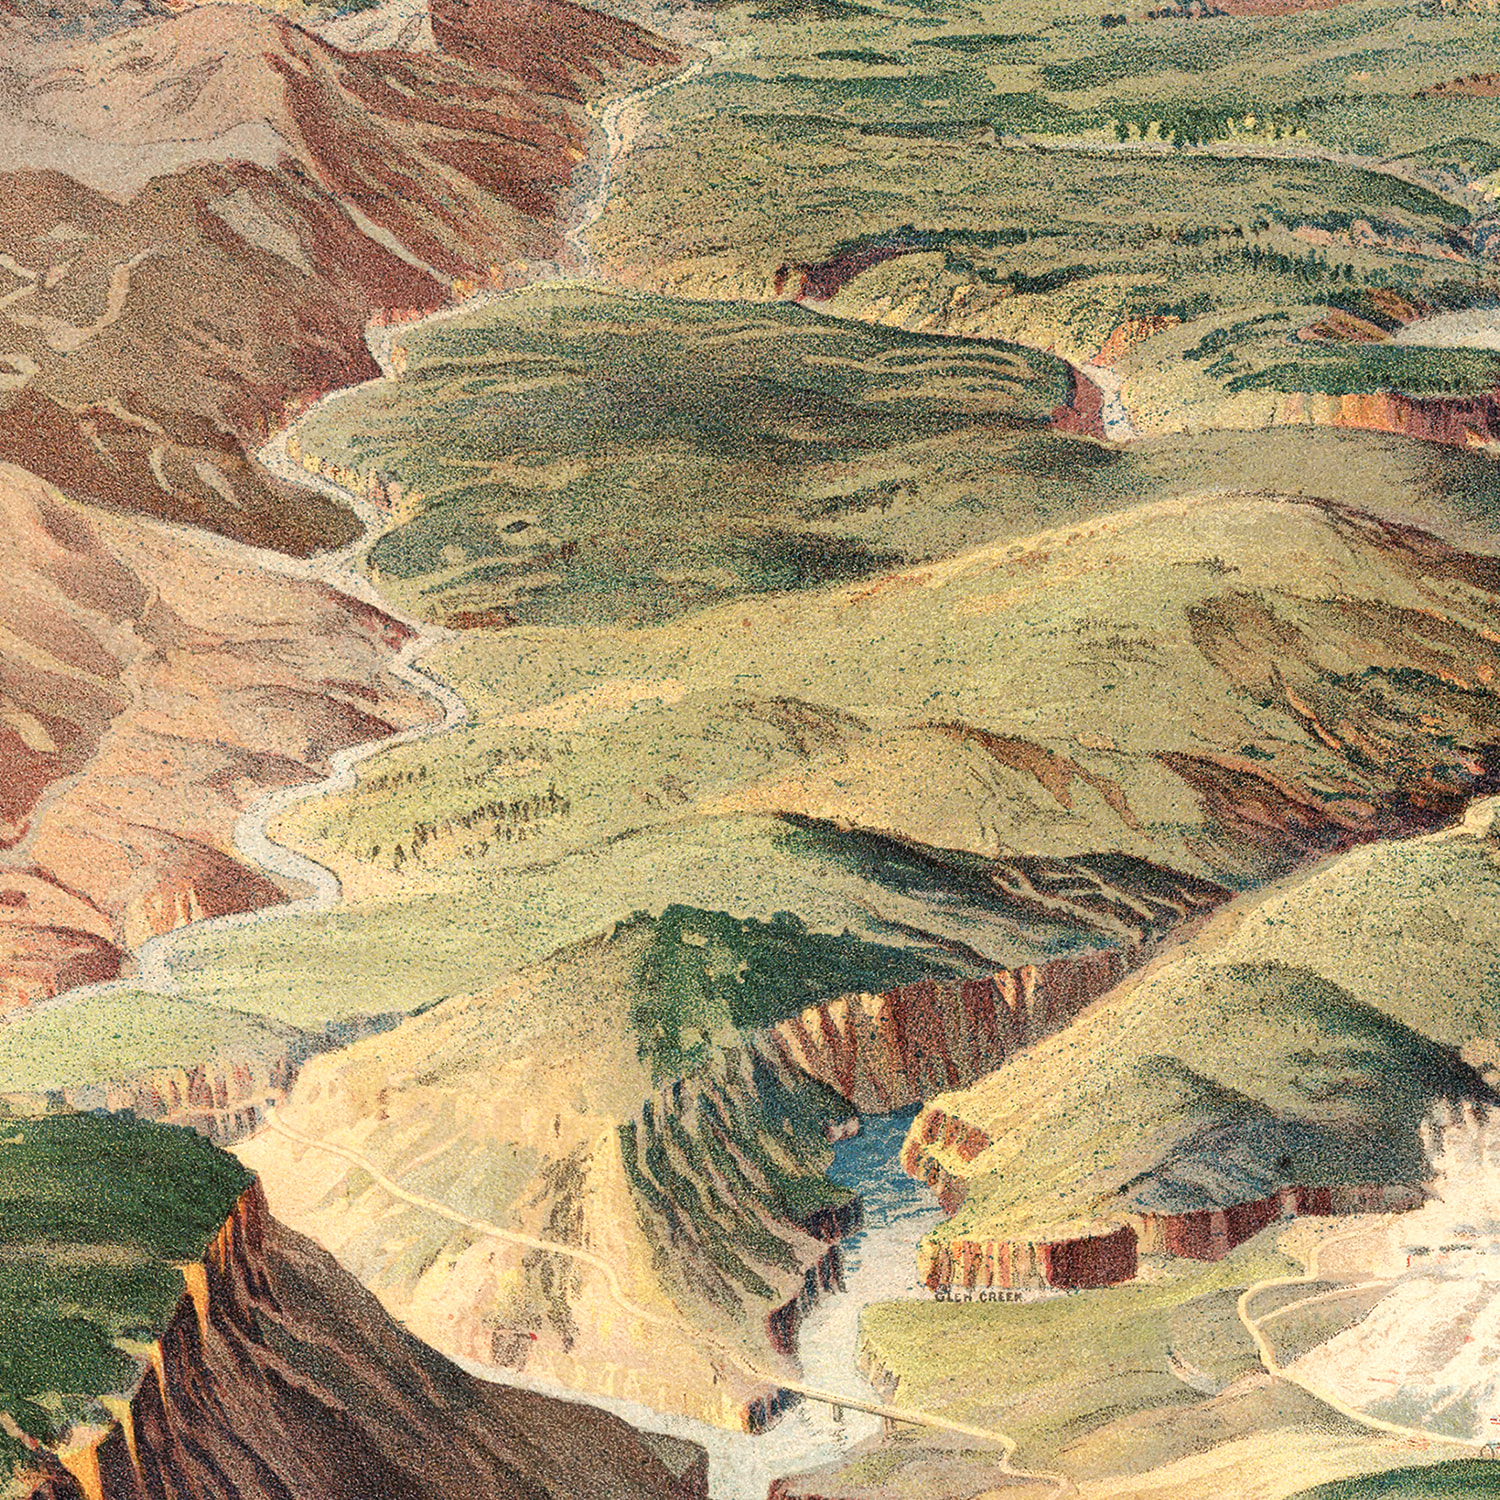 Vintage Map of Yellowstone National Park 1904